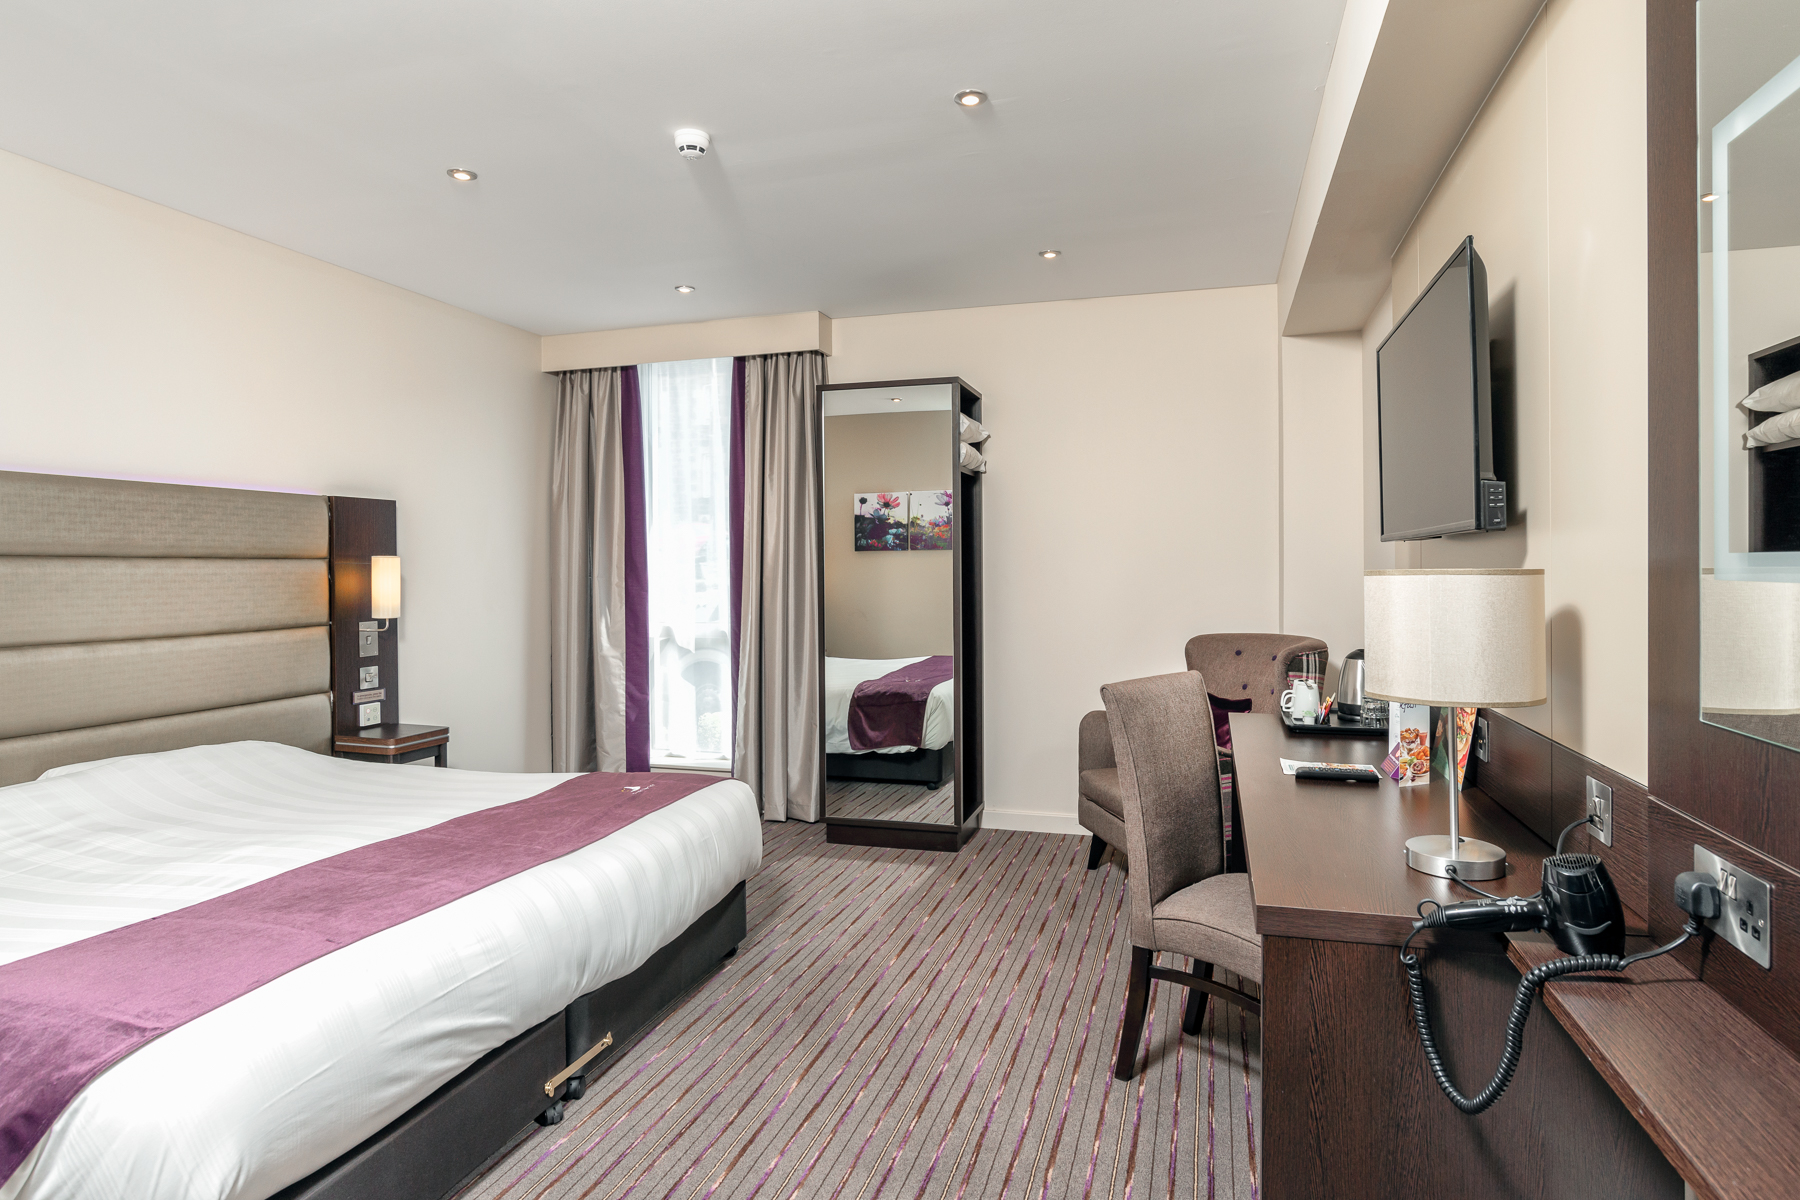 Premier Inn | Ogilvie Construction | Oban, Scotland